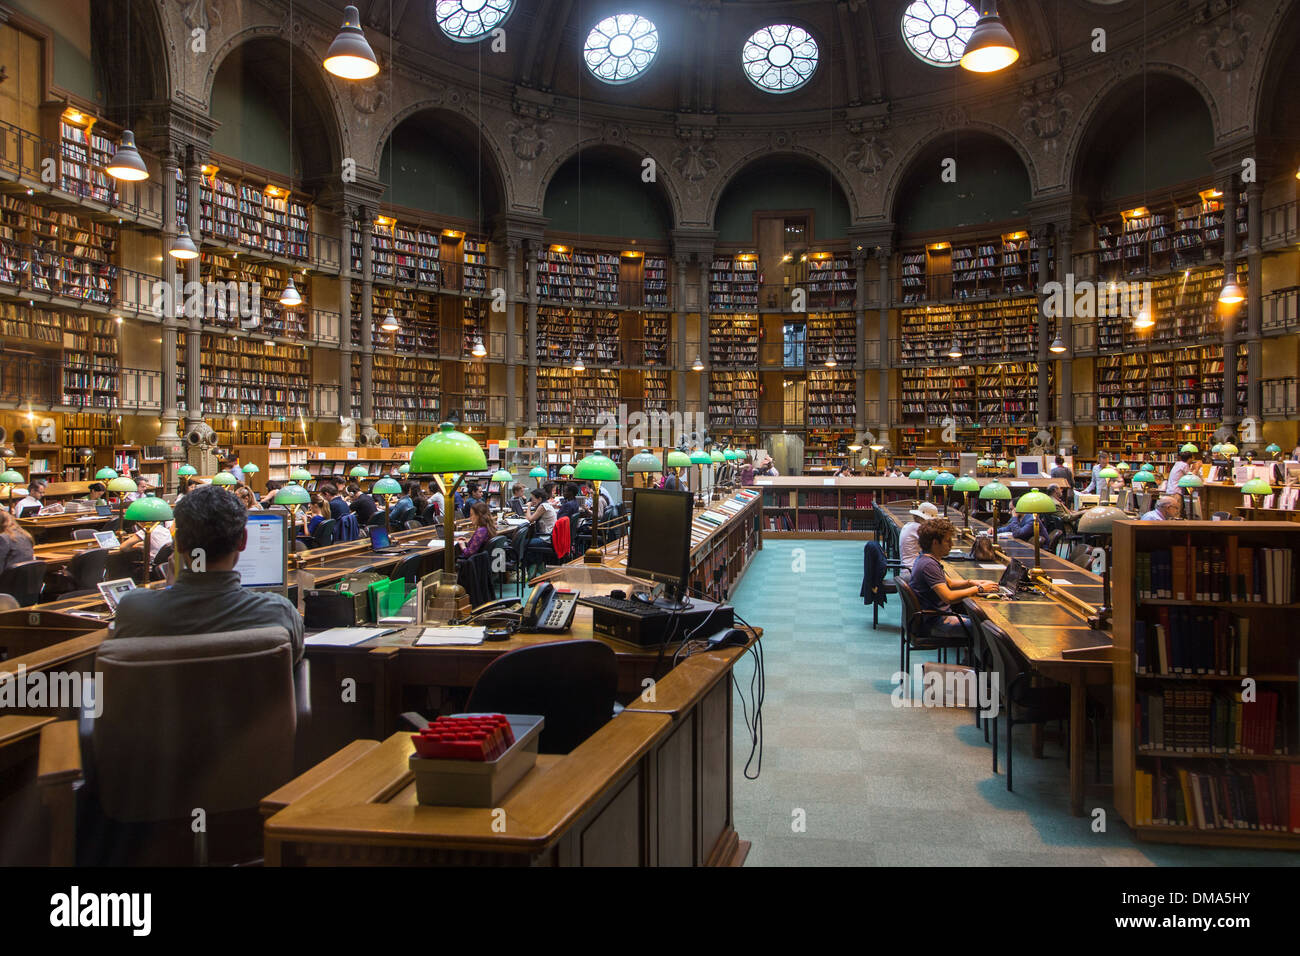 READING ROOM IN THE BIBLIOTHEQUE NATIONALE, THE BIGGEST LIBRARY IN FRANCE, RUE RICHELIEU, PARIS (75), FRANCE - Stock Image